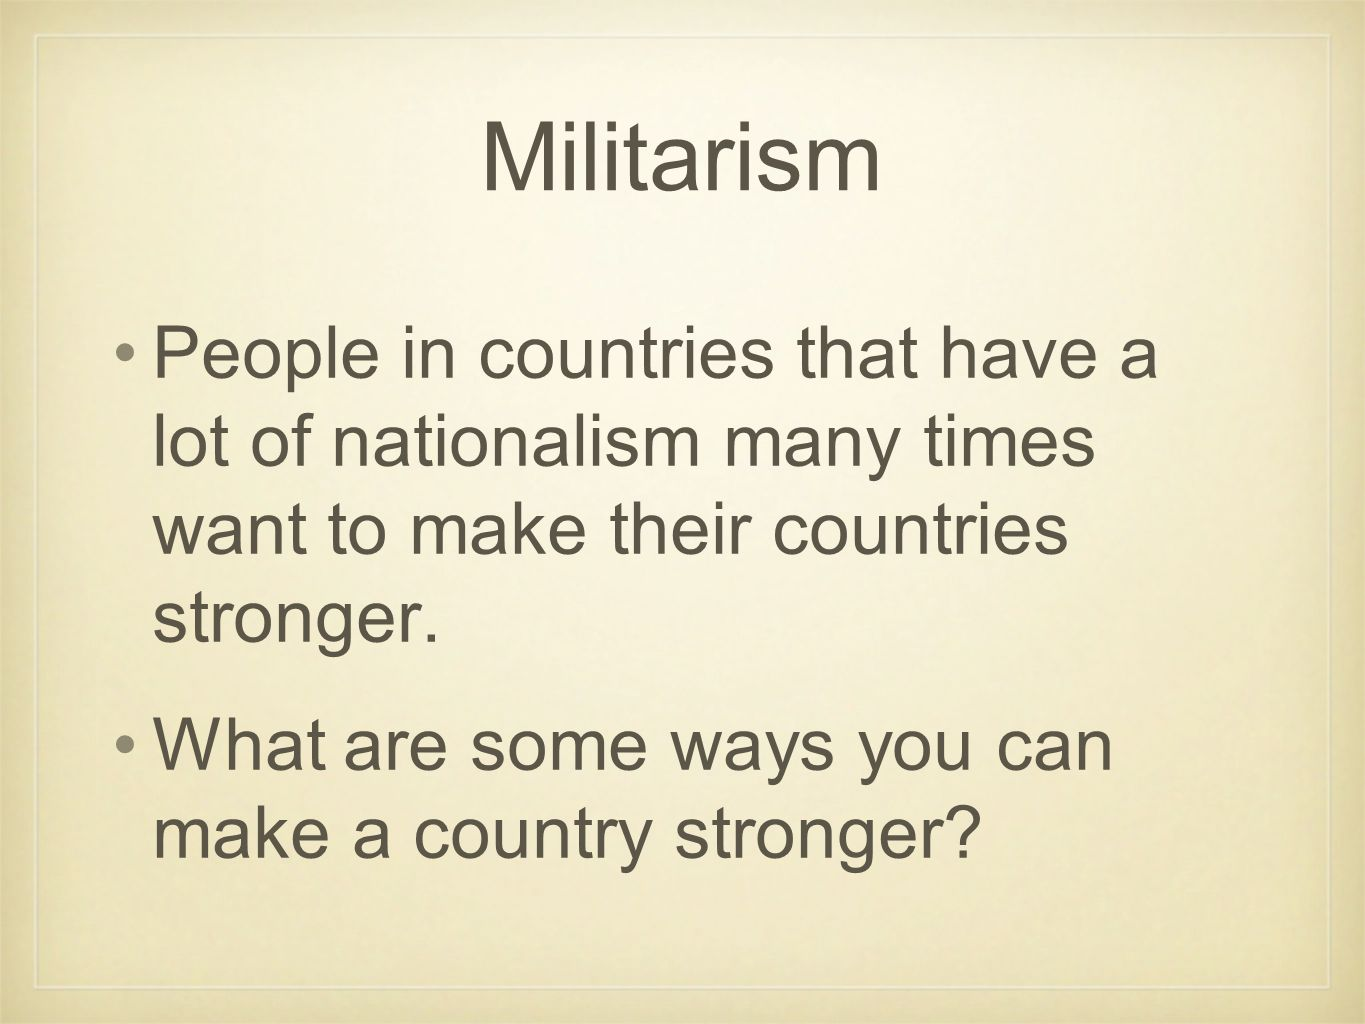 Militarism A country can make themselves stronger by making their military (army) larger and stronger.